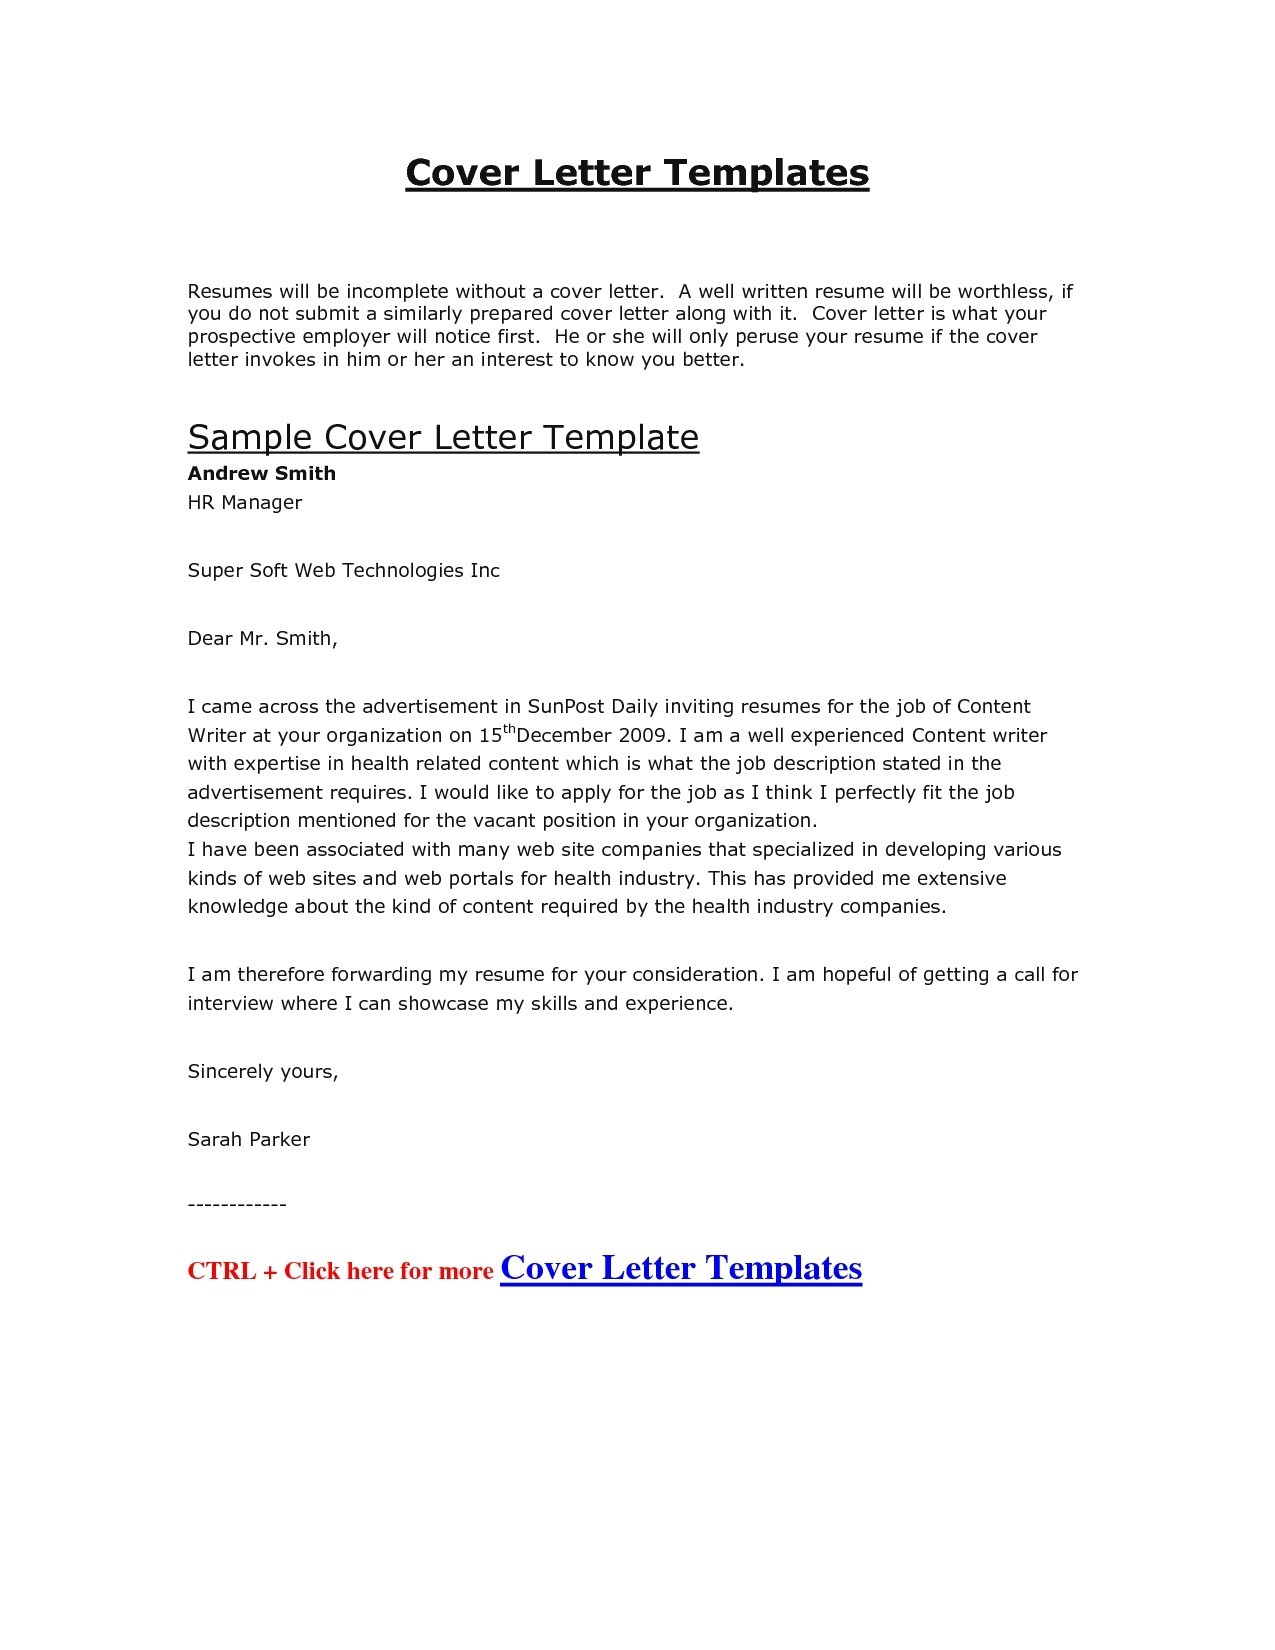 Cover Letter Template for It Job - Job Application Letter format Template Copy Cover Letter Template Hr